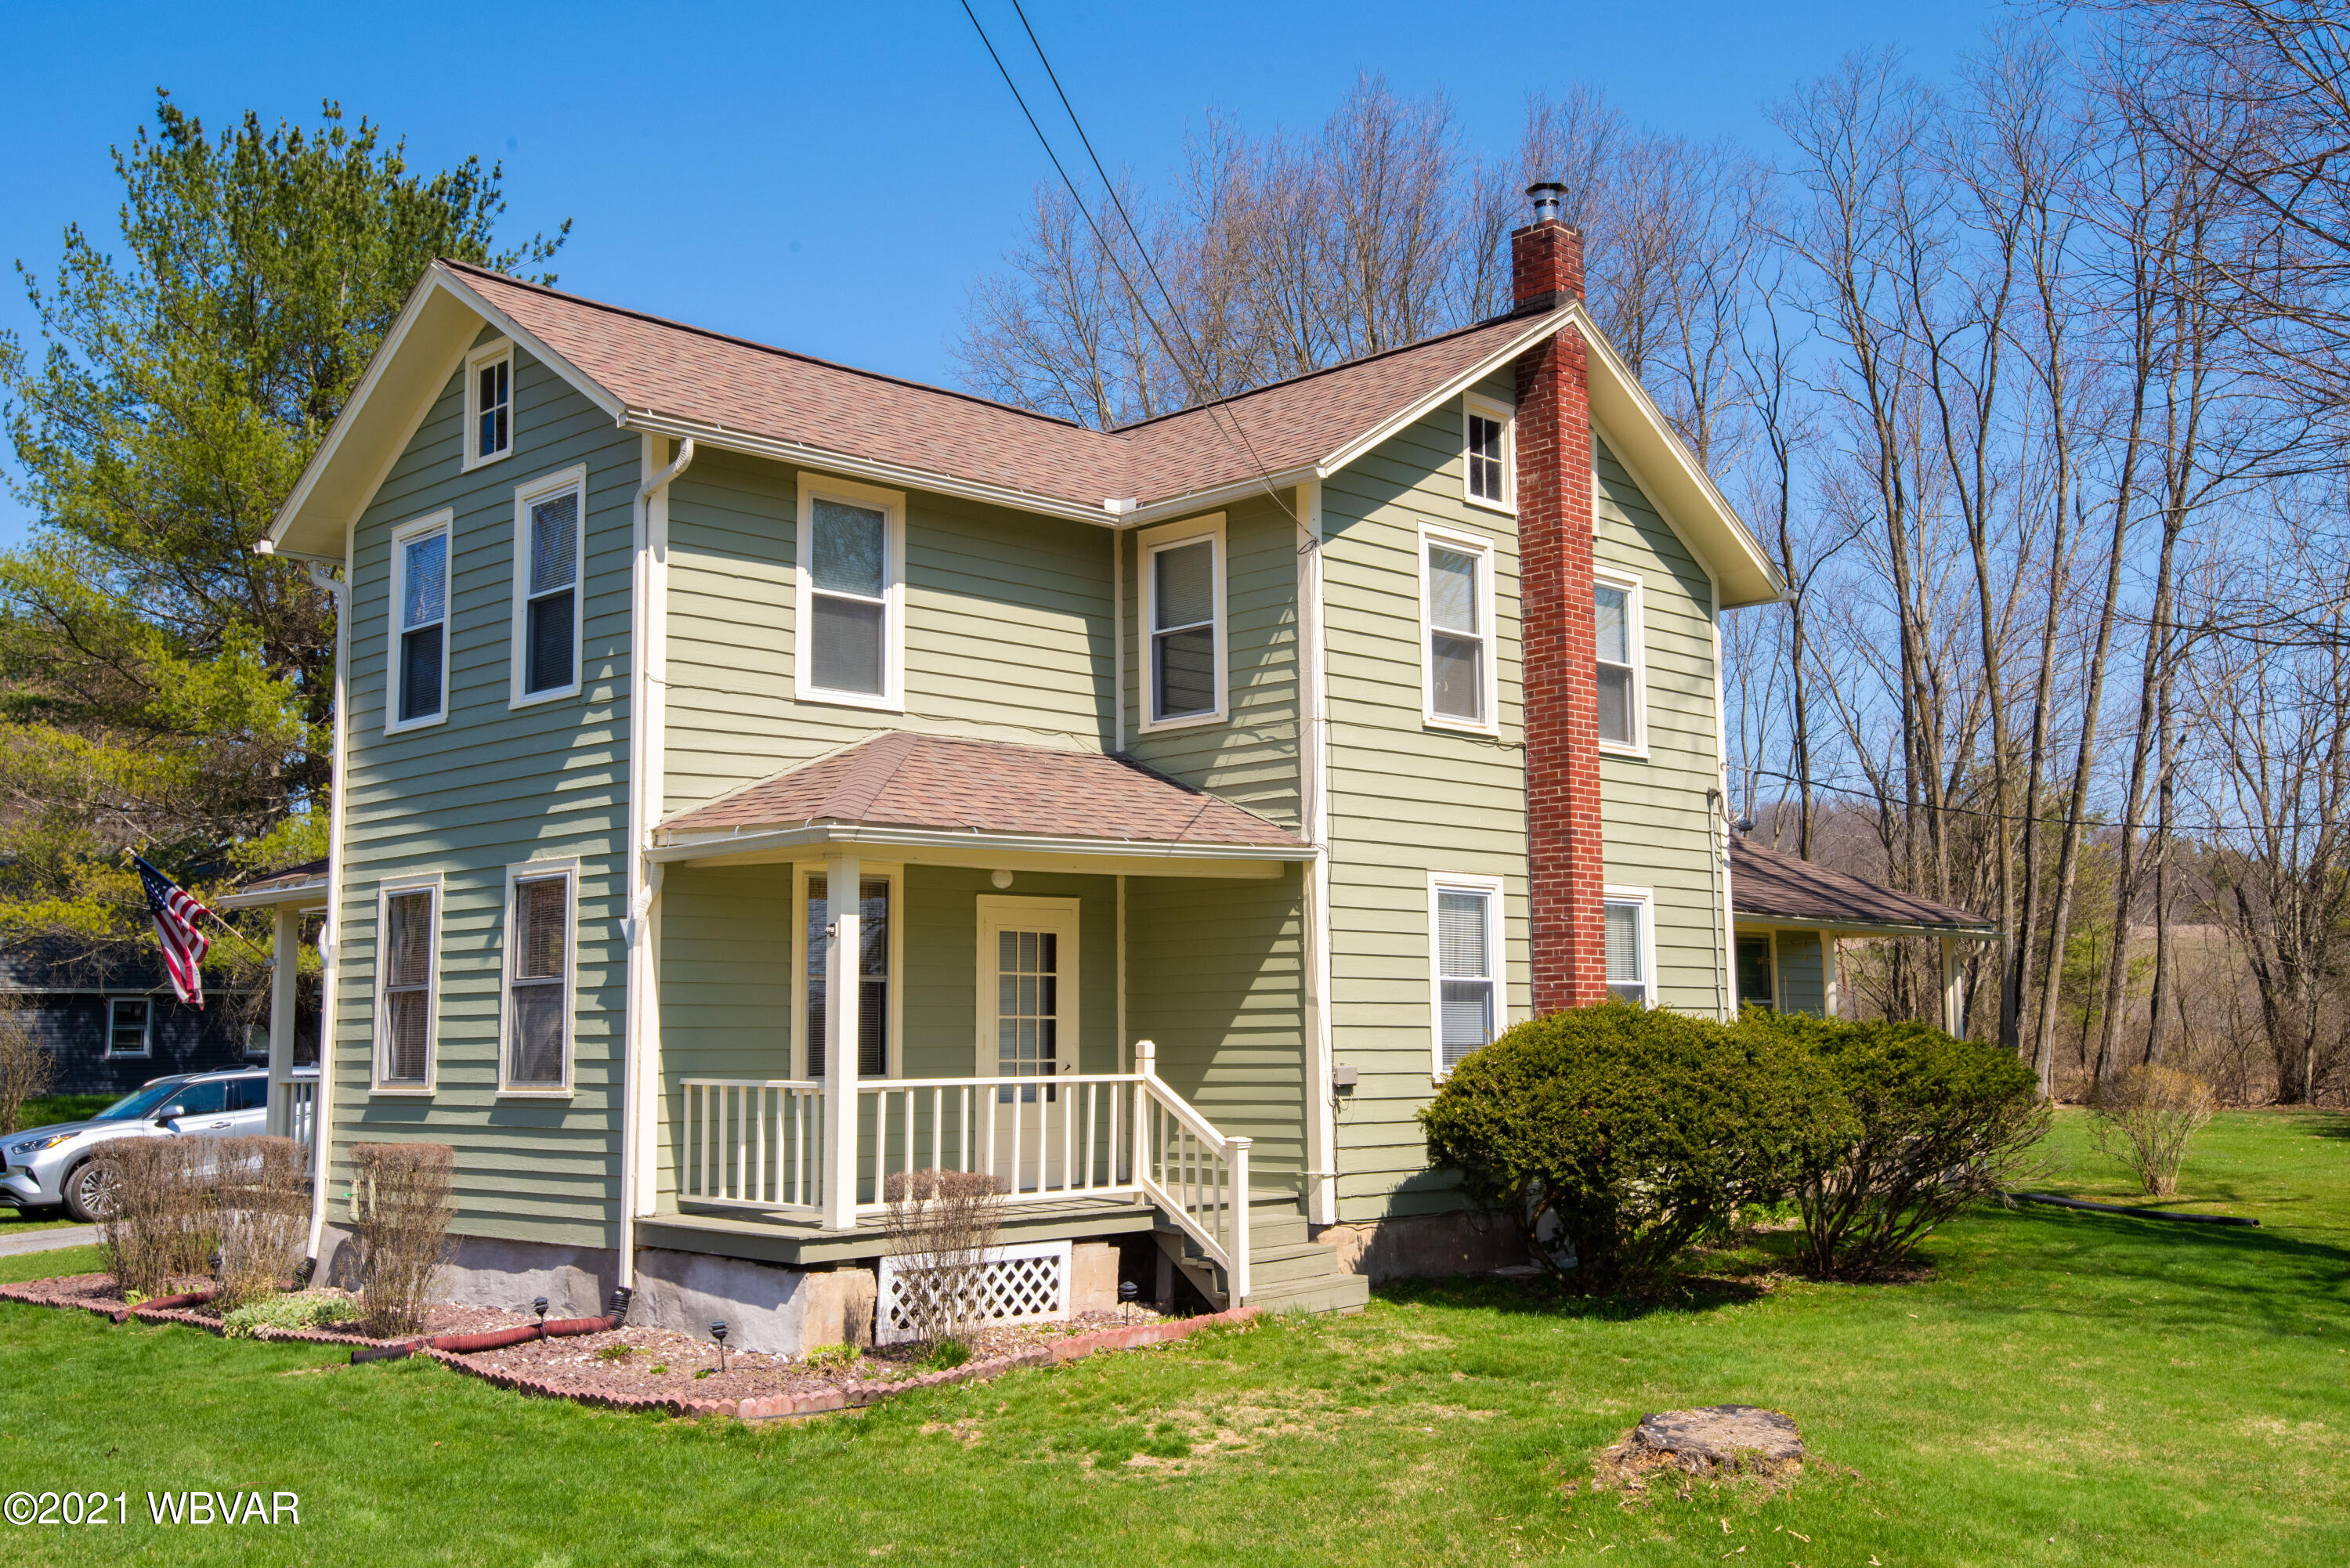 1168 PA-973W HIGHWAY, Cogan Station, PA 17728, 3 Bedrooms Bedrooms, ,2 BathroomsBathrooms,Residential,For sale,PA-973W,WB-92248